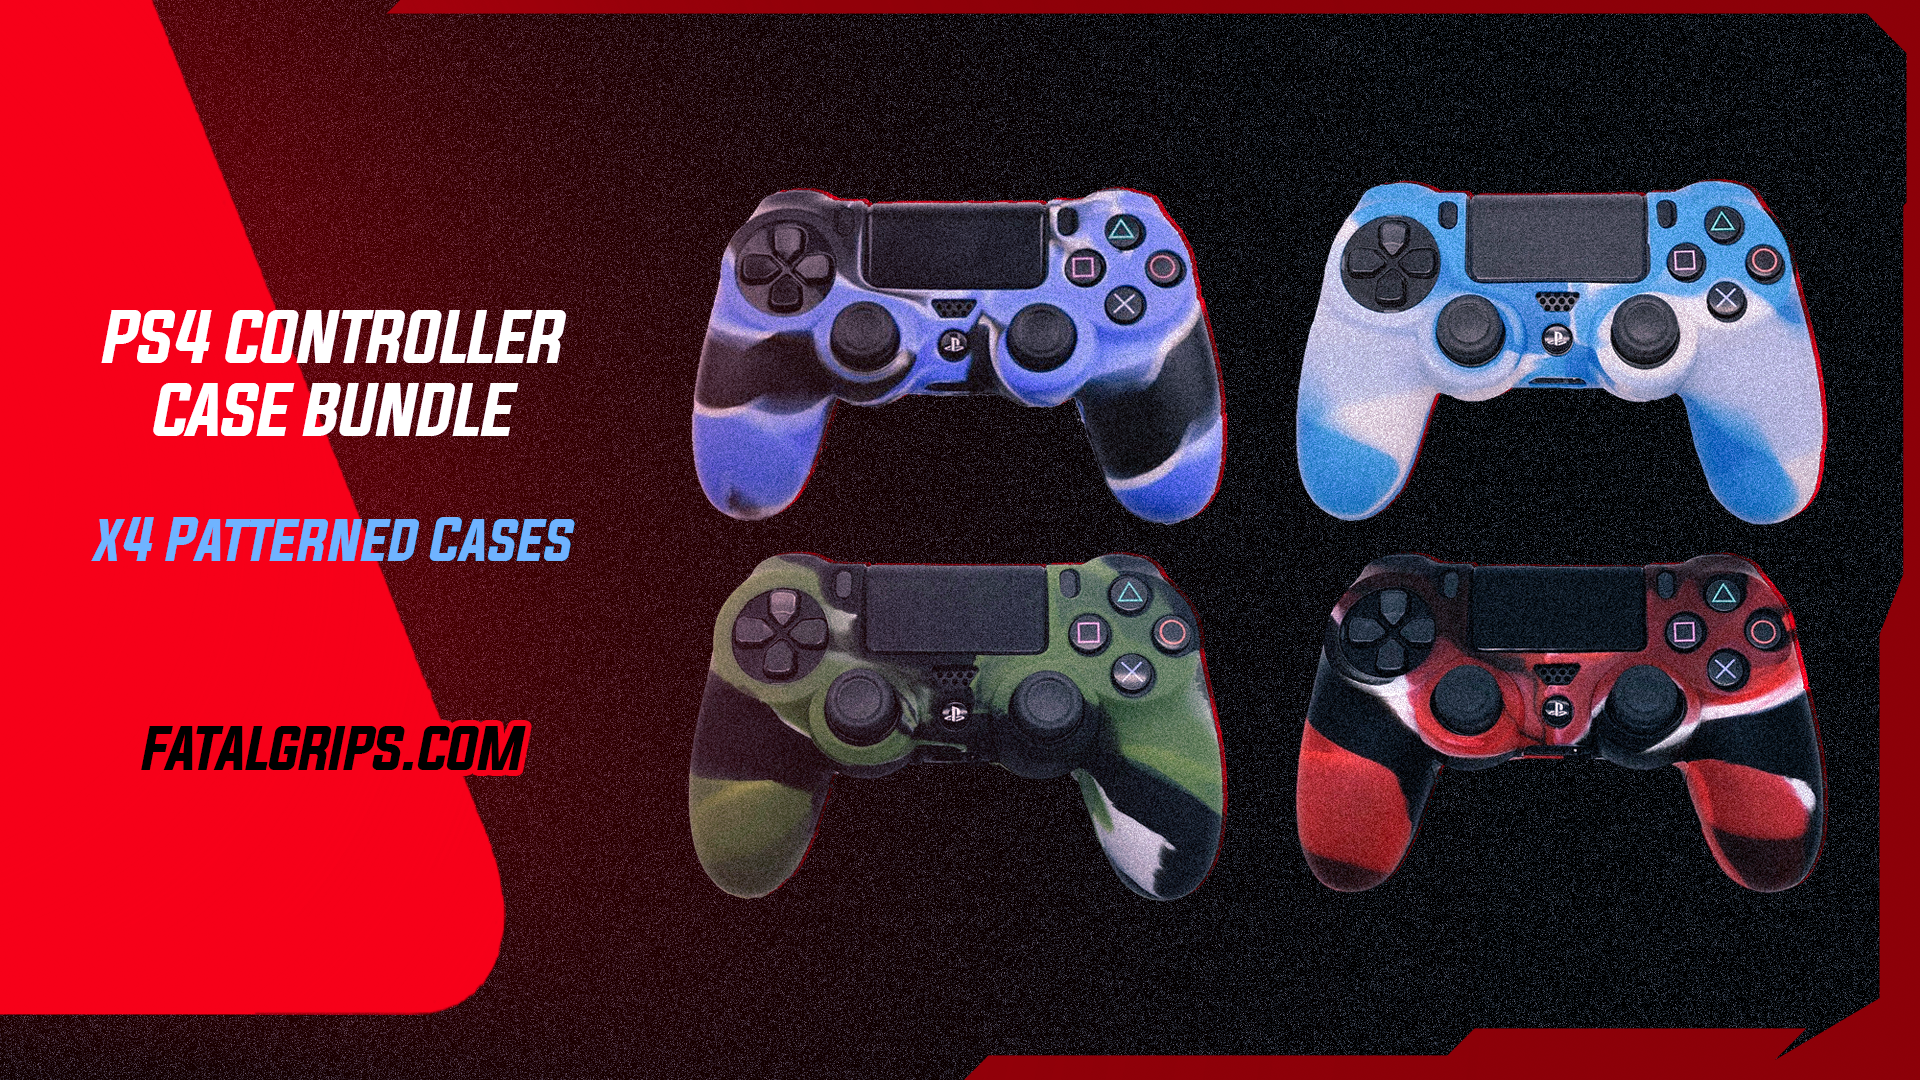 x4 PATTERNED PS4 CONTROLLER CASES - Fatal Grips